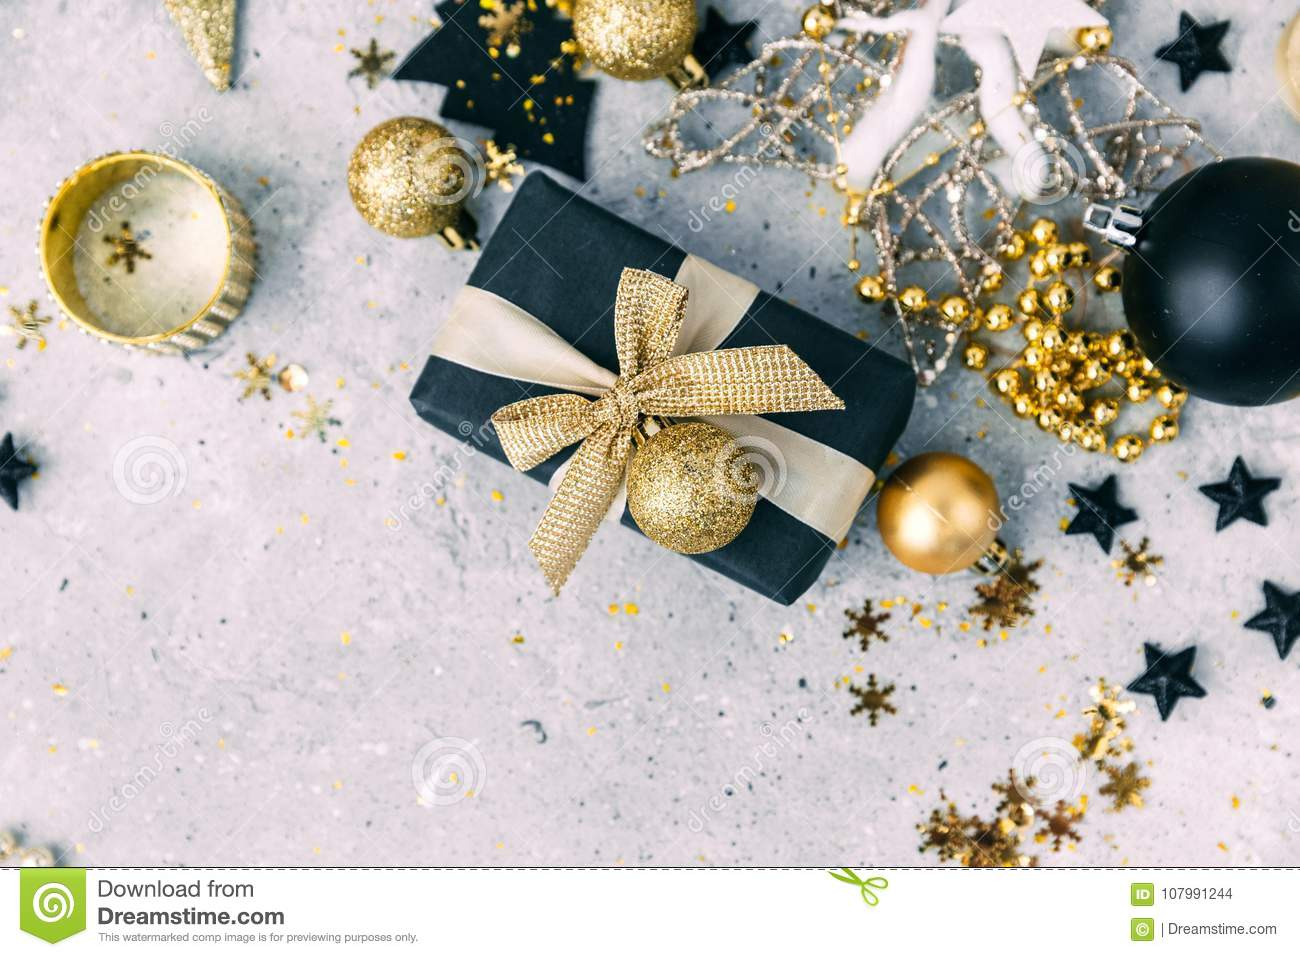 Black And Gold Christmas Decorations With Gift Box Stock Photo